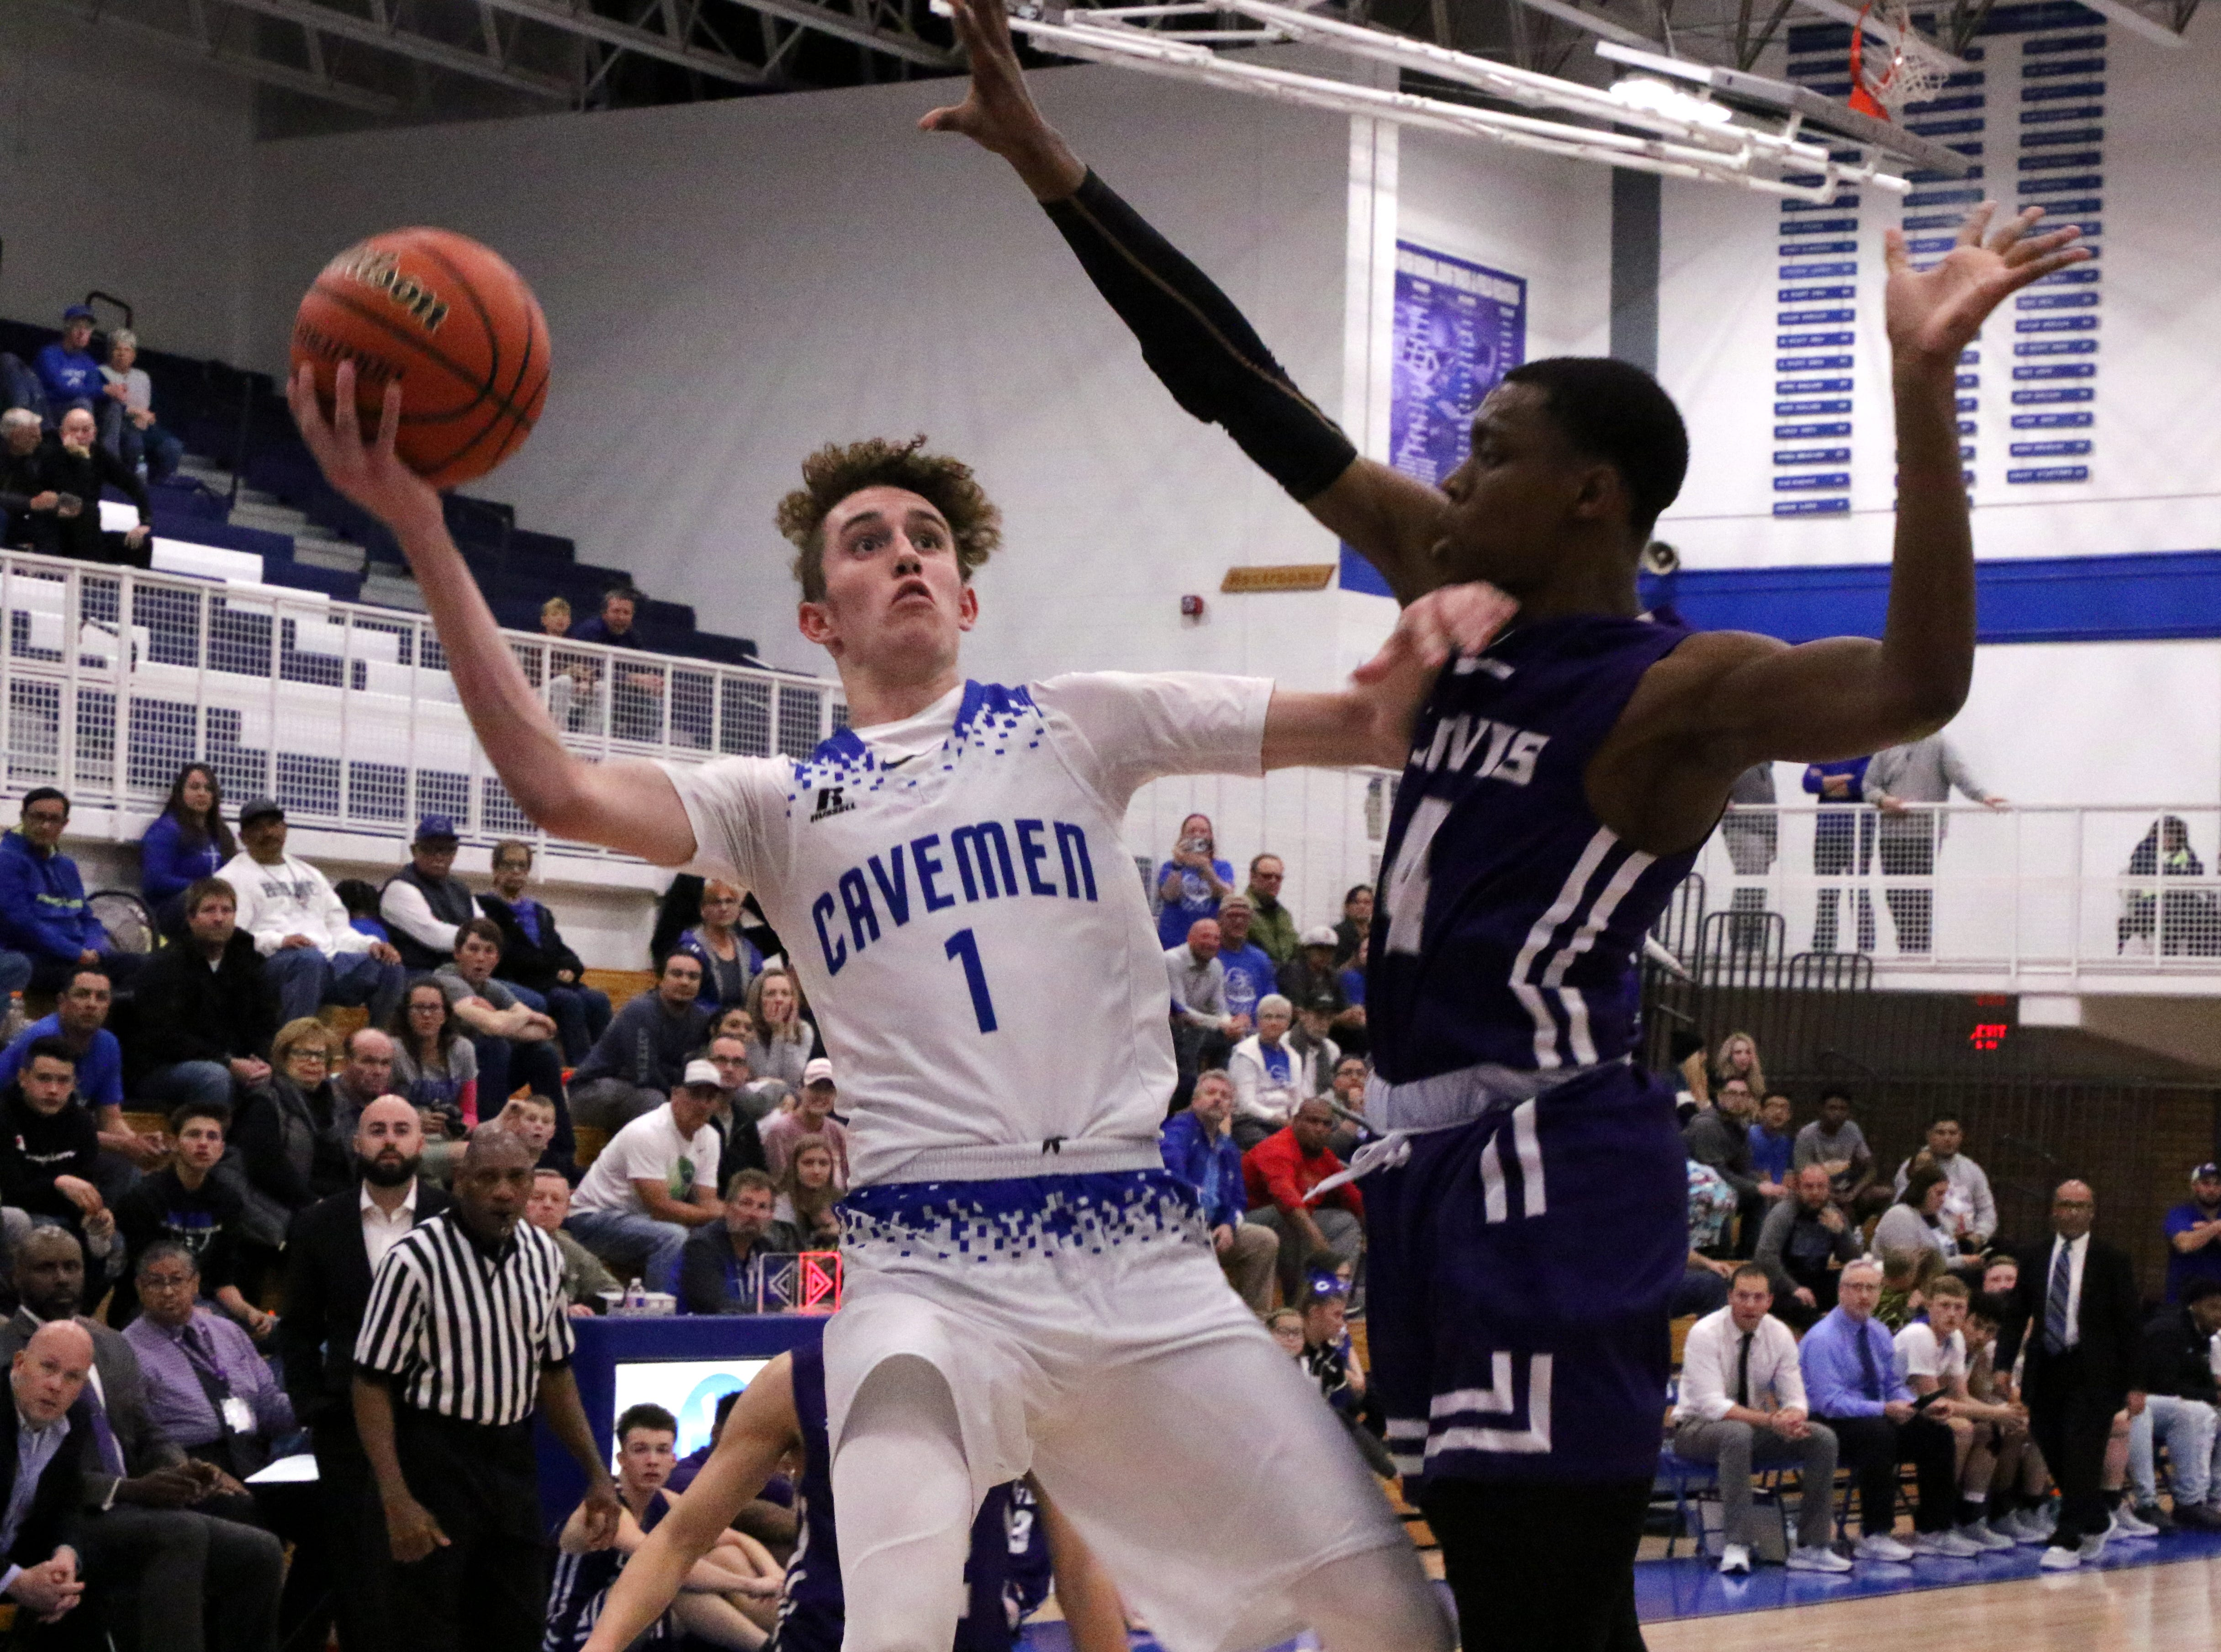 Josh Sillas takes a contested shot during the first half of Tuesday's game against Clovis. He finished with 27 points to lead Carlsbad over Clovis, 45-35.